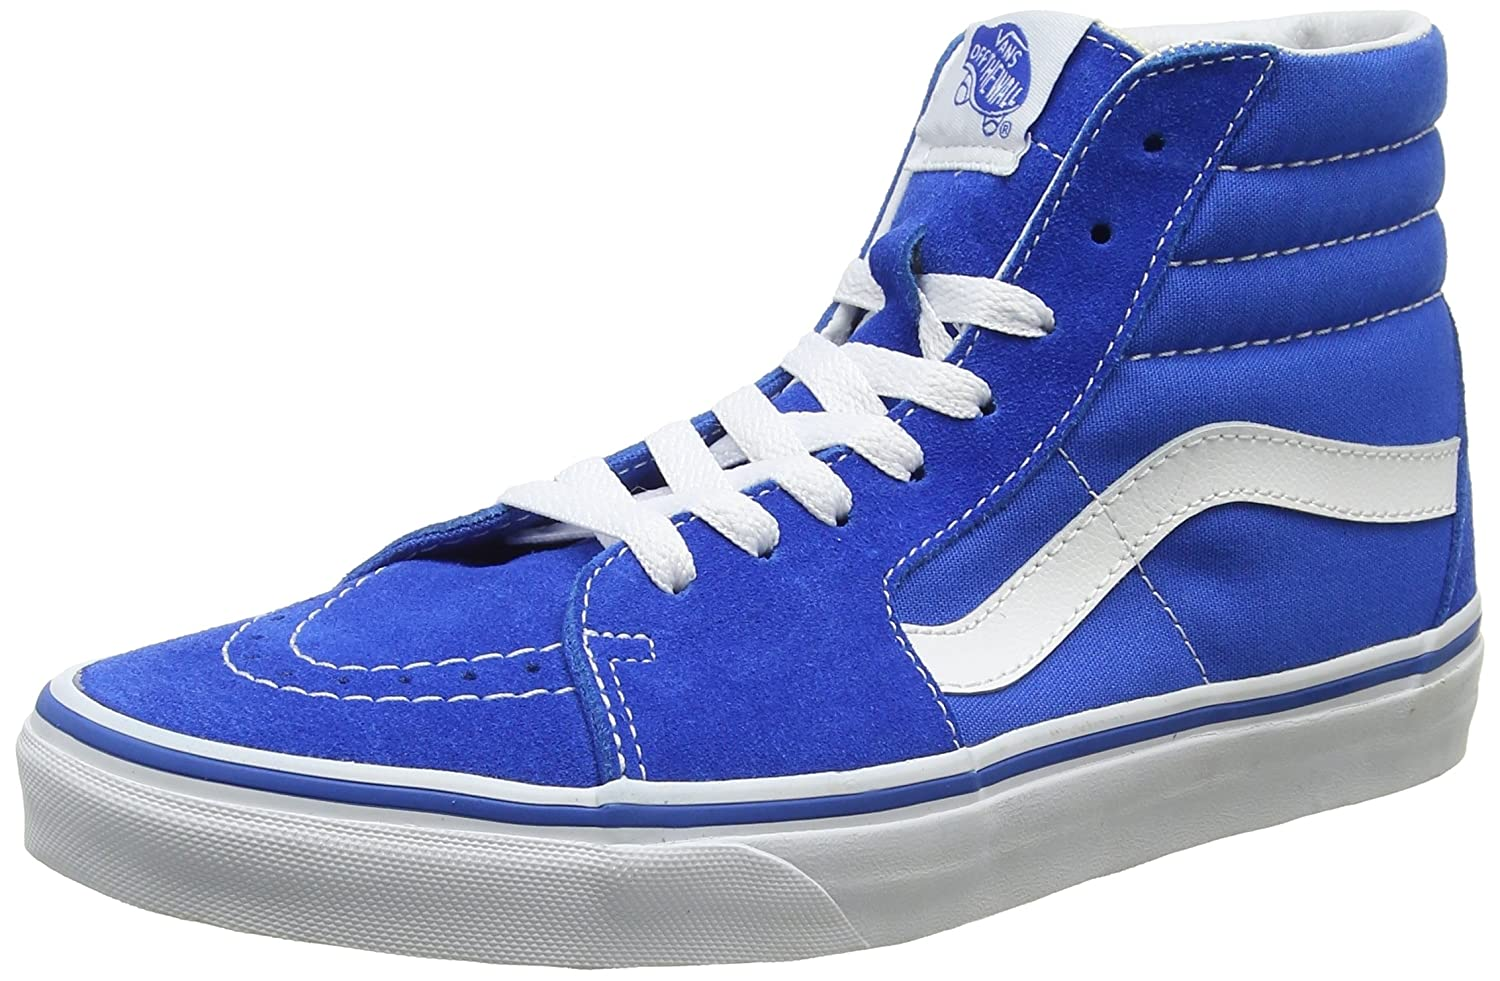 Vans Sk8-Hi Unisex Casual High-Top Skate Shoes, Comfortable and Durable in Signature Waffle Rubber Sole B01I2AYE7O 9.5 M US Women / 8 M US Men|Imperial Blue